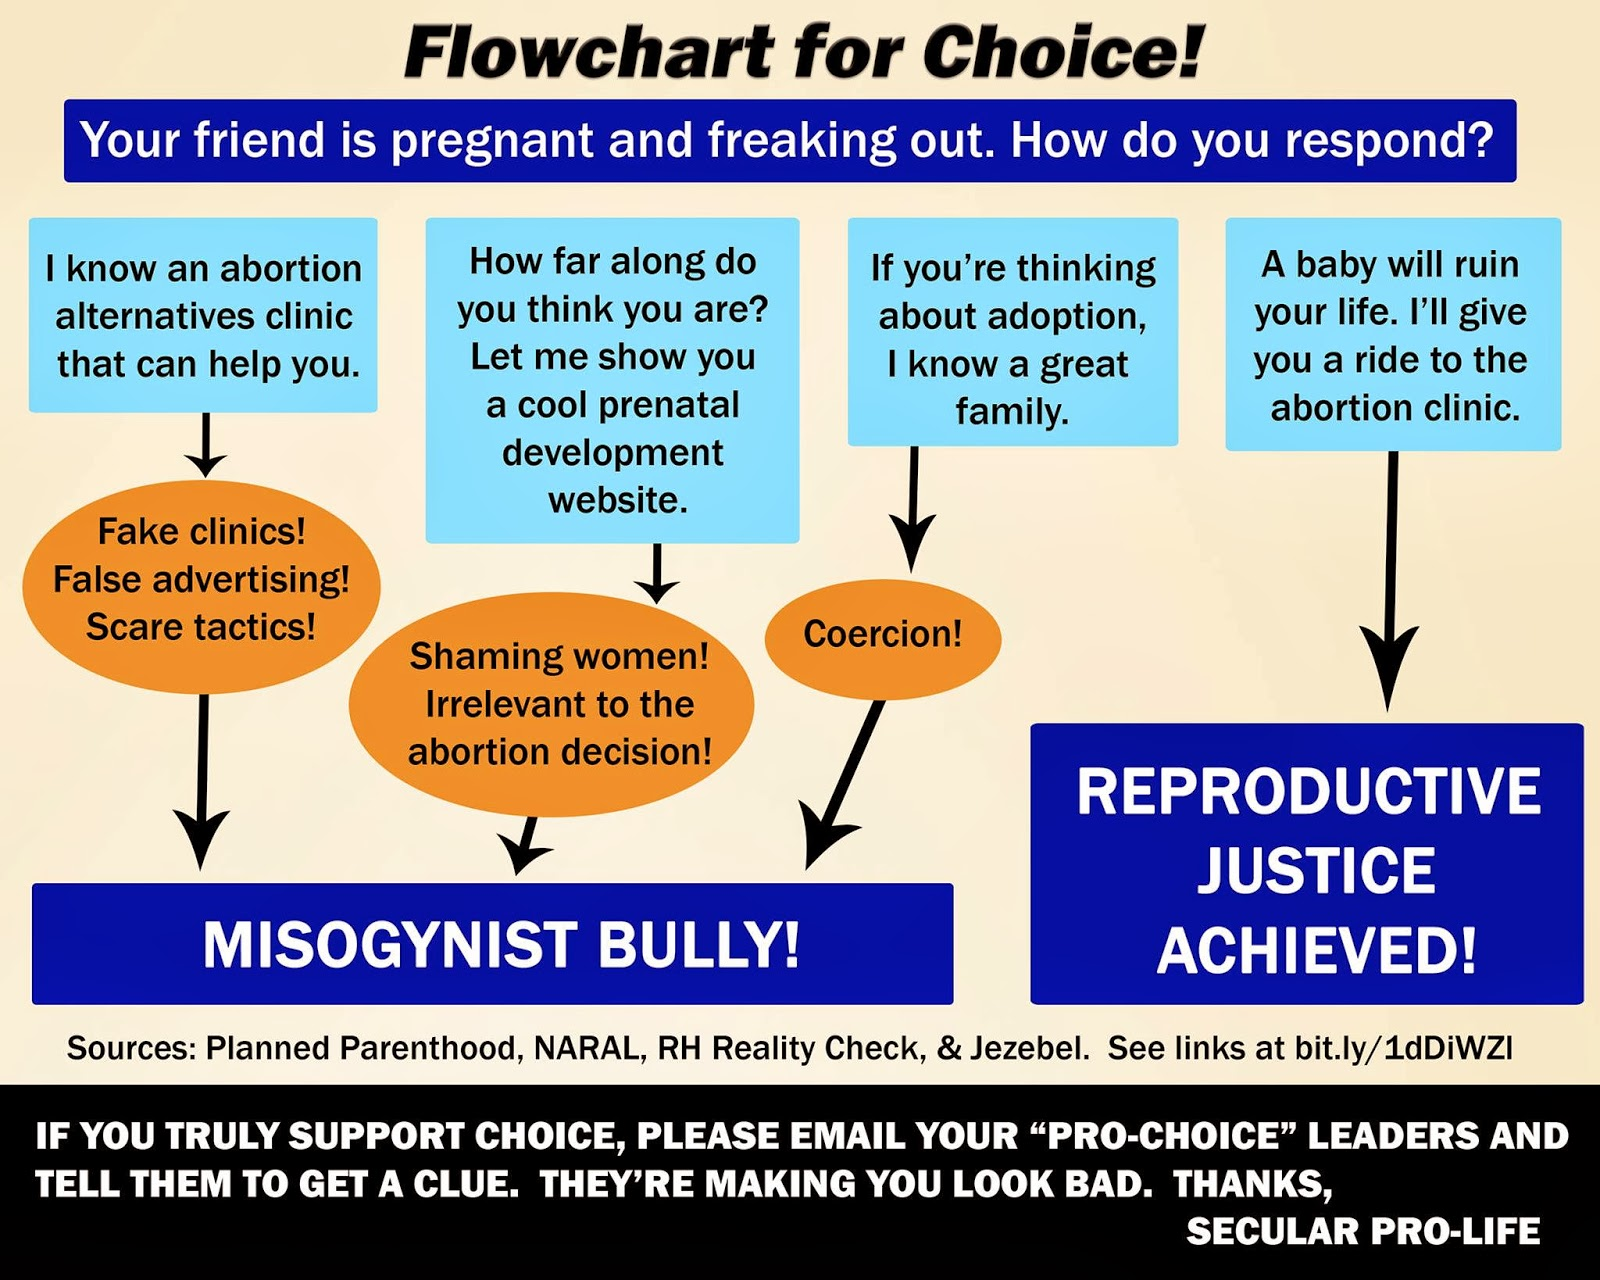 secular pro life perspectives 2013 the year s top graphics